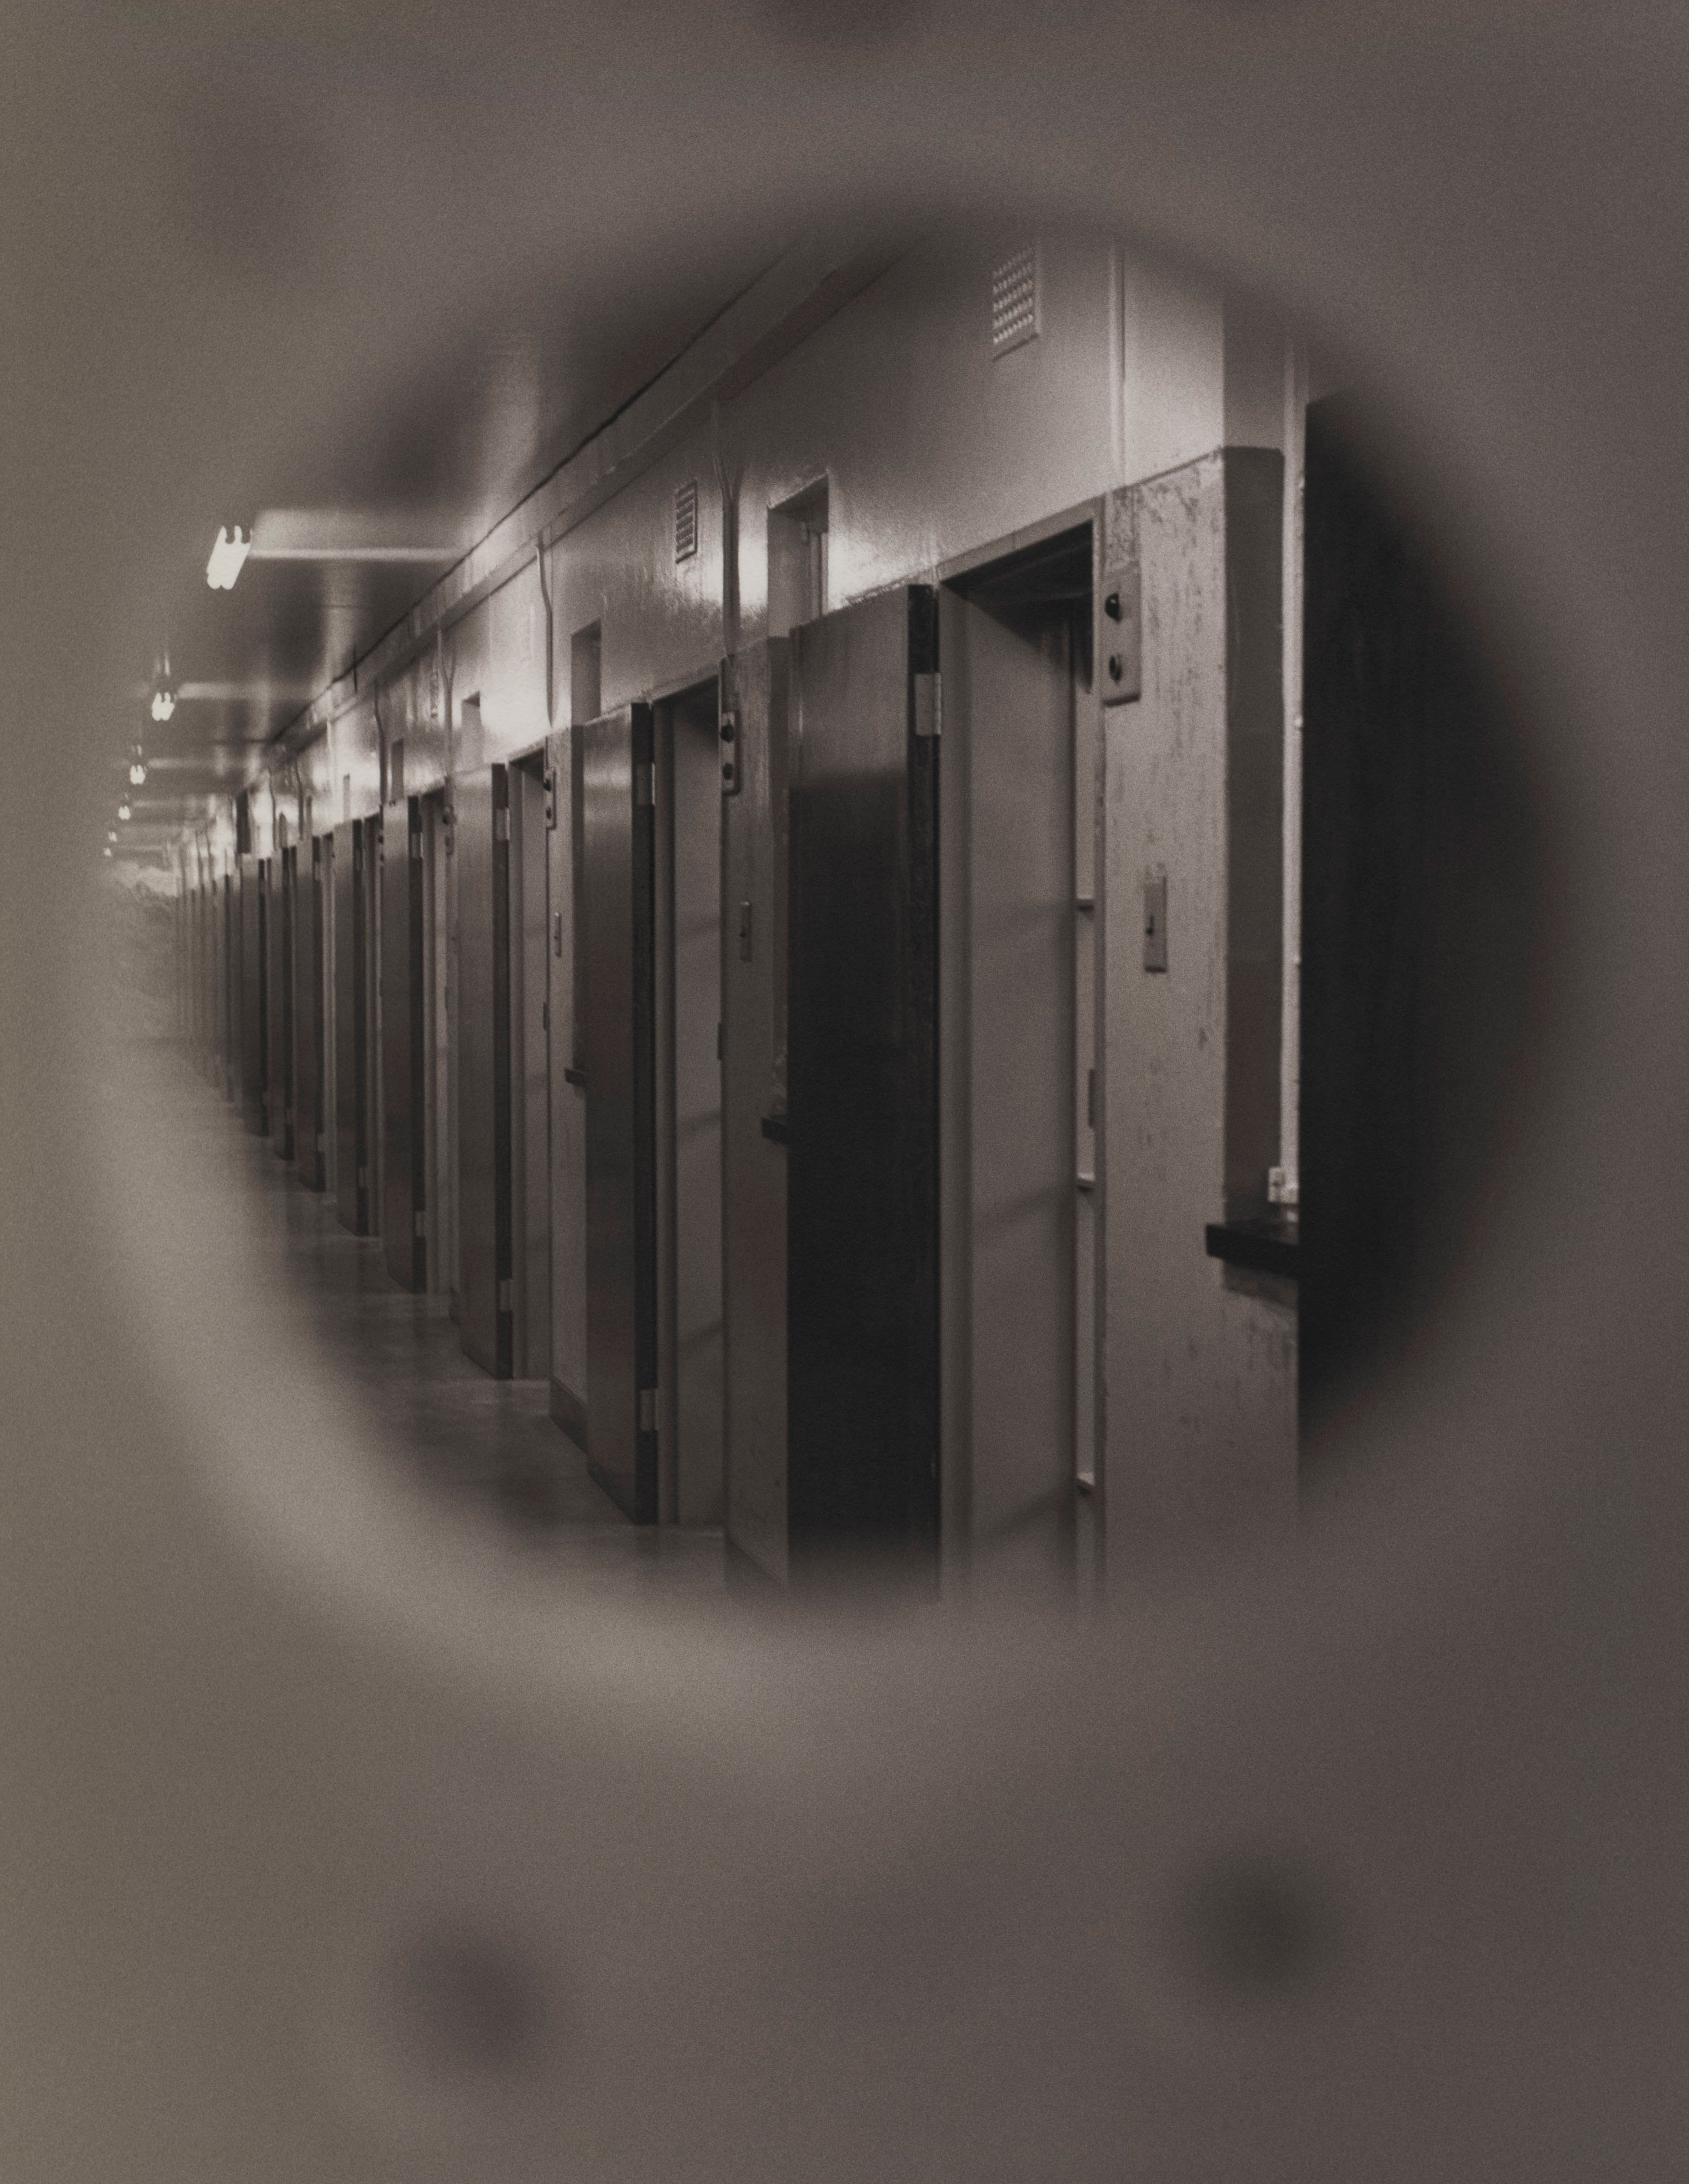 A glimpse through a prison cell's keyhole reveals a corridor near where Mandela spent much of his imprisonment.                                                                                             1992